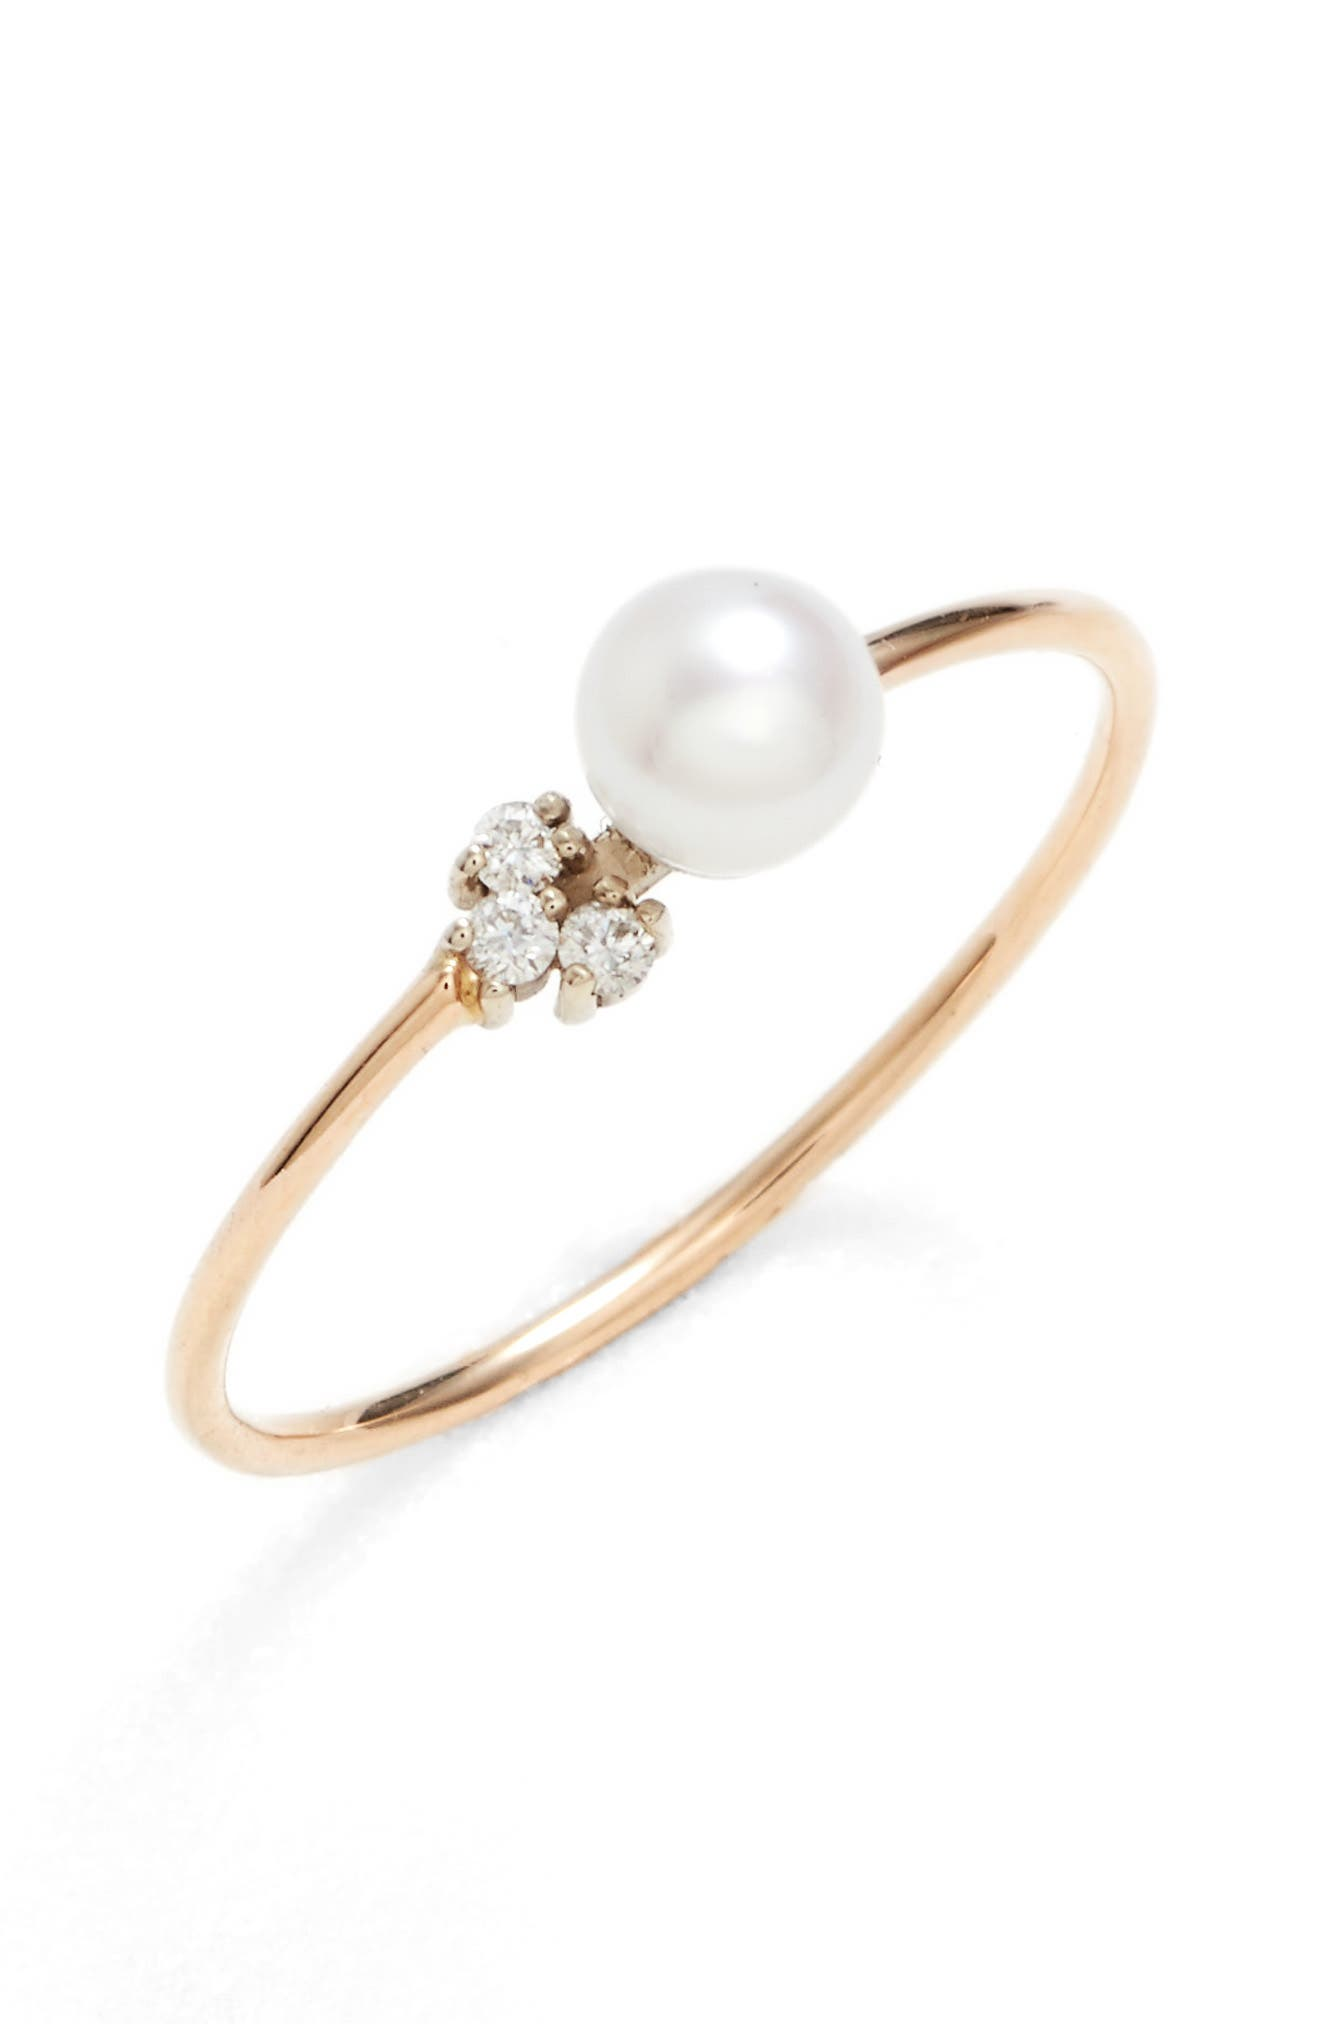 Pearl & Diamond Ring,                             Main thumbnail 1, color,                             YELLOW GOLD/ WHITE PEARL